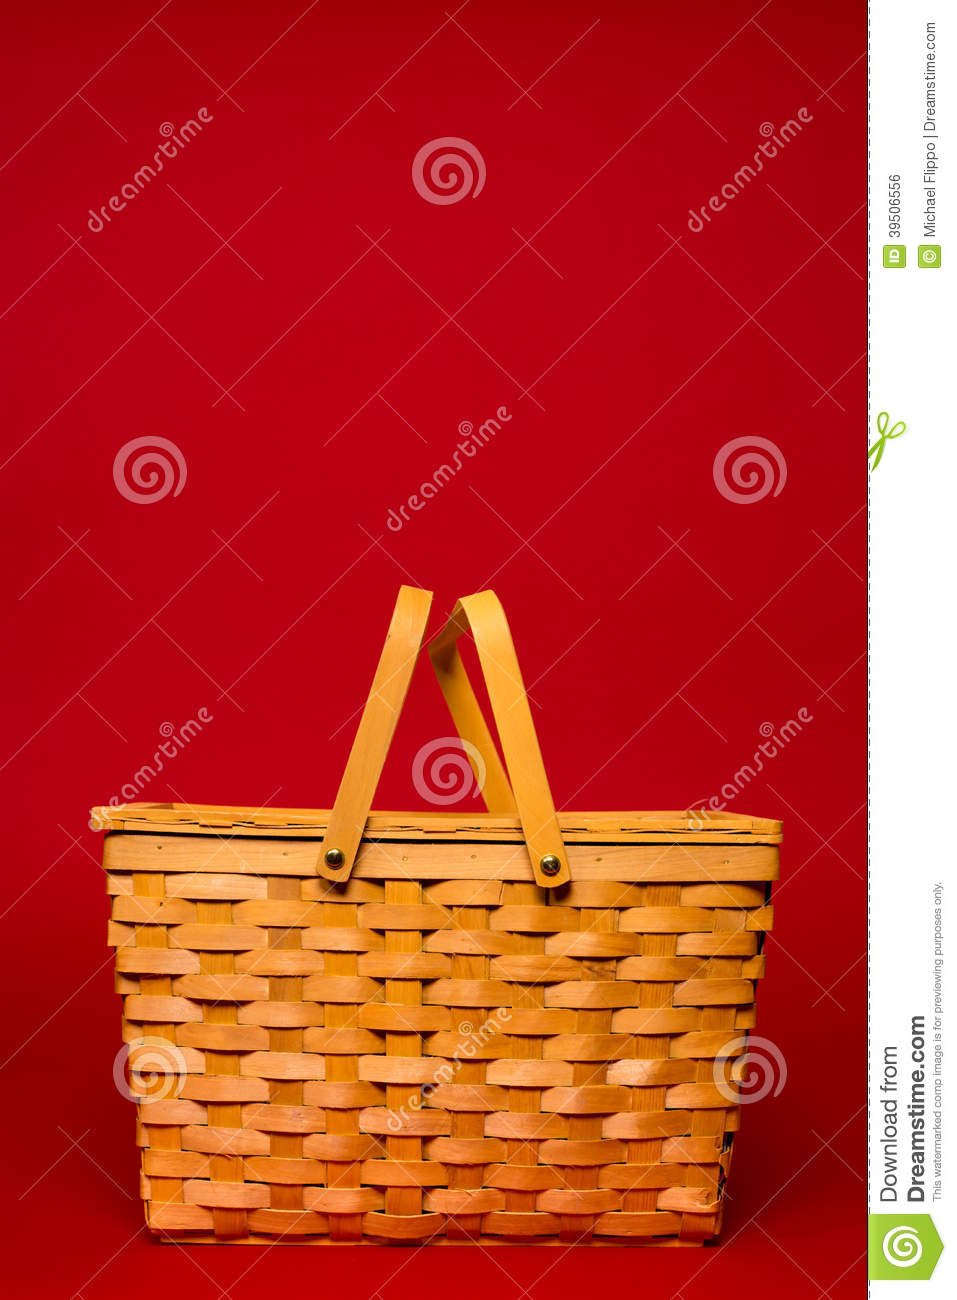 Wicker picnic basket on a red background